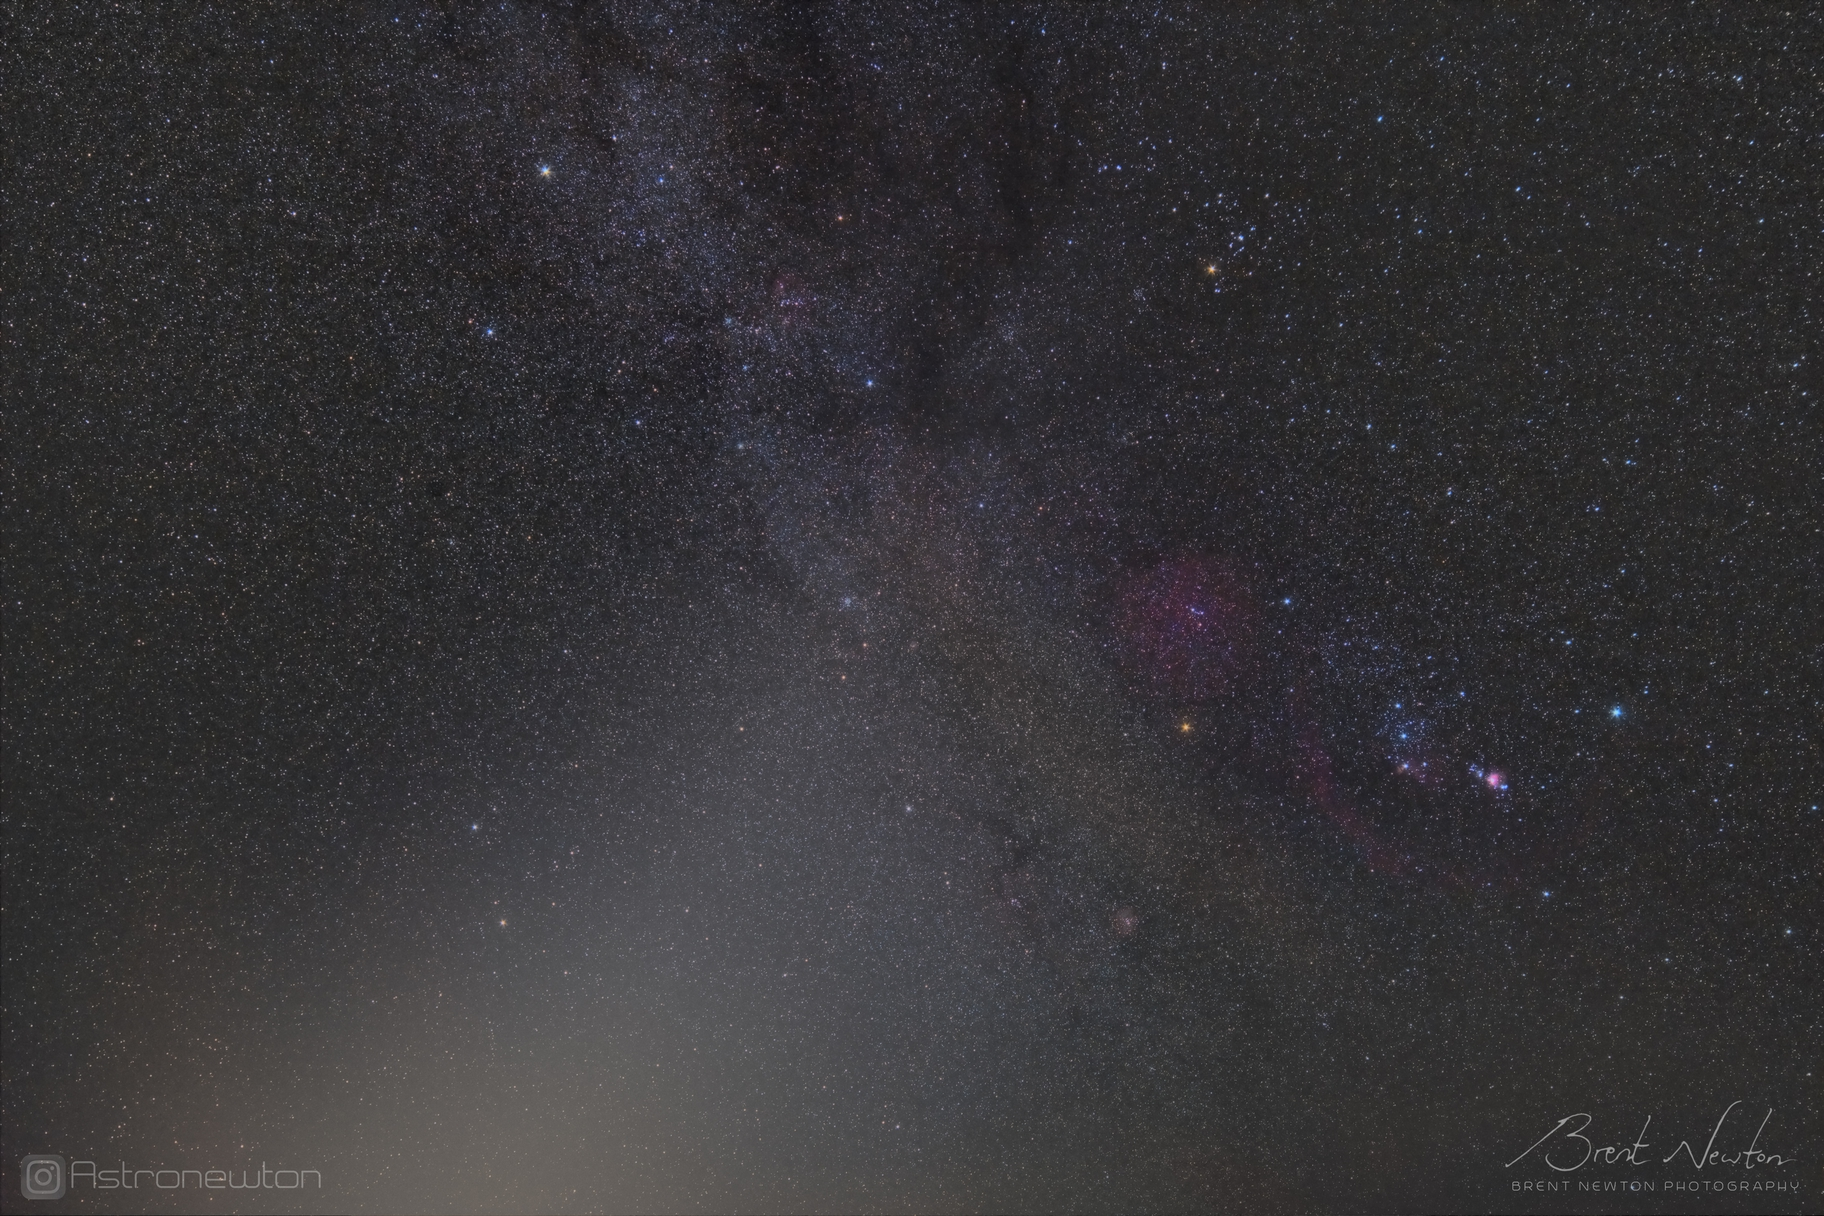 Zodiacal Light near Orion, captured in the early morning in September 2019 at a Bortle 2 site